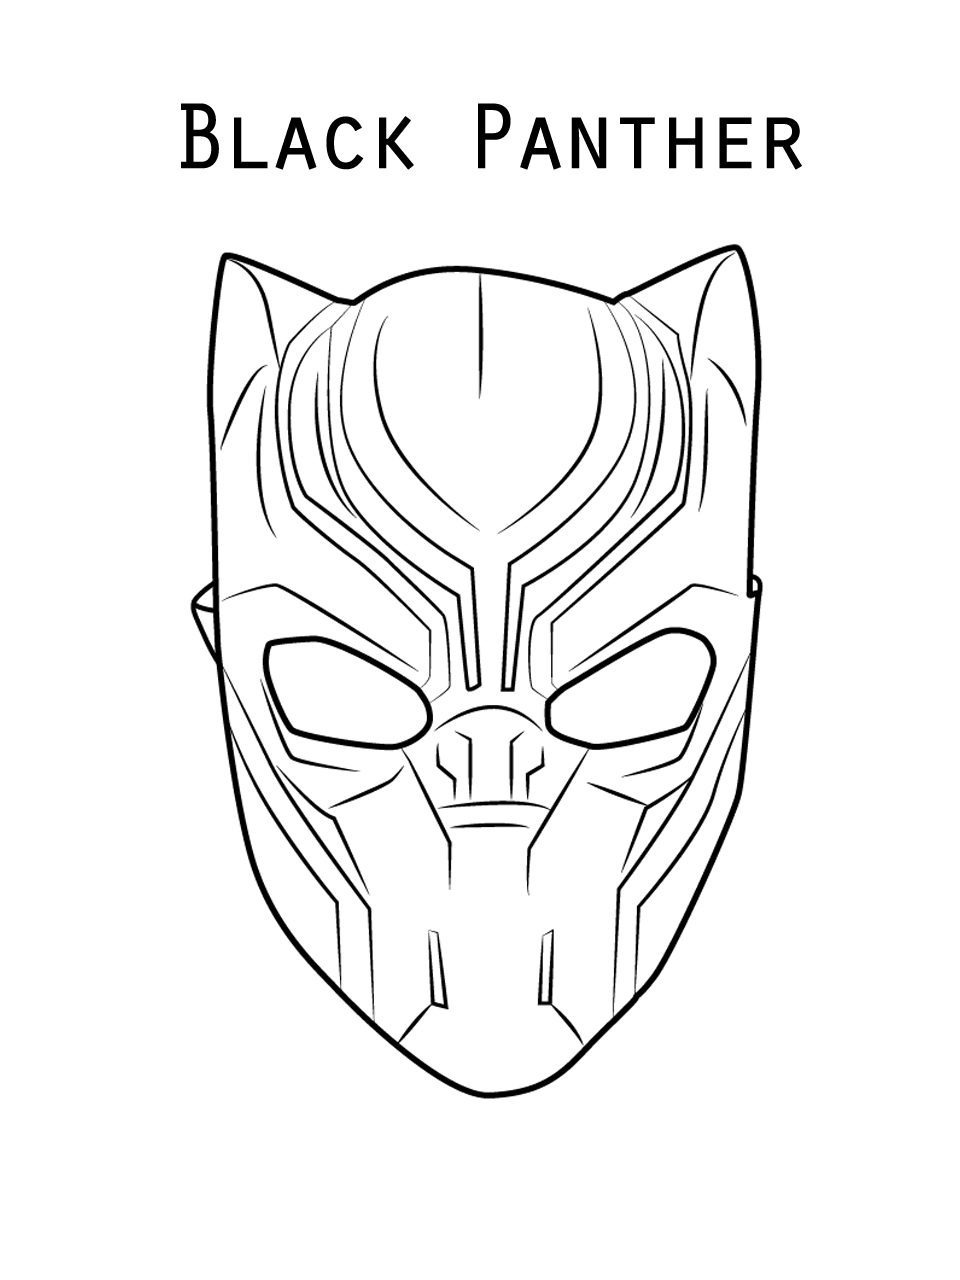 Black Panther Full Movie Sketch Easy Black Panther Drawing